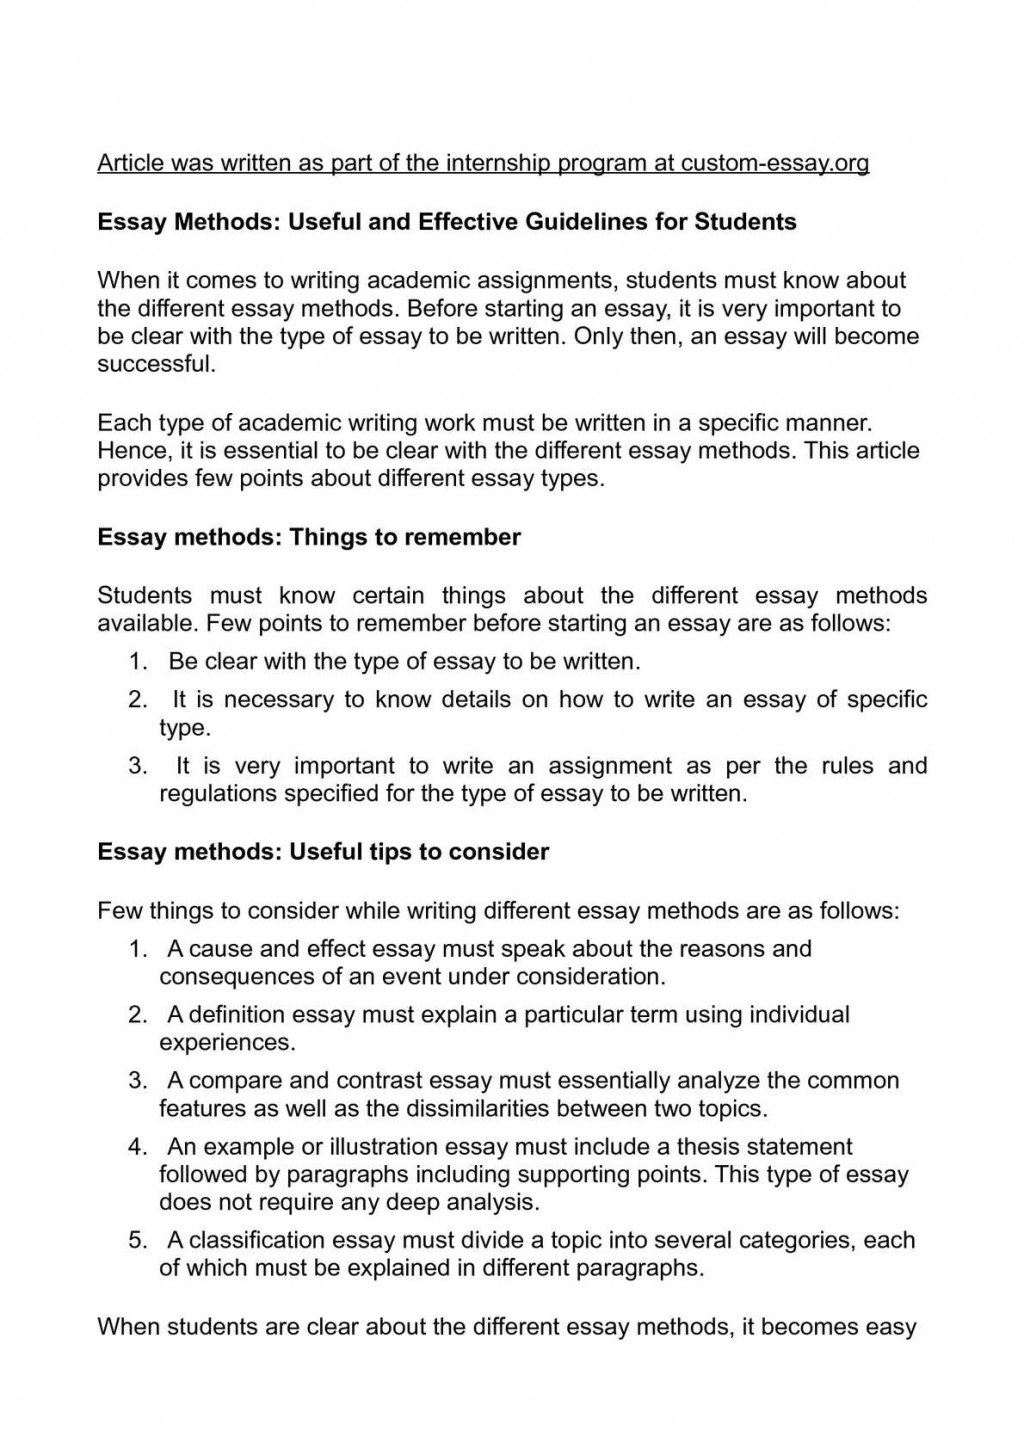 005 How To Type An Essay Example Awesome Fast A One Page Paper In Apa Format Mla On Mac Large